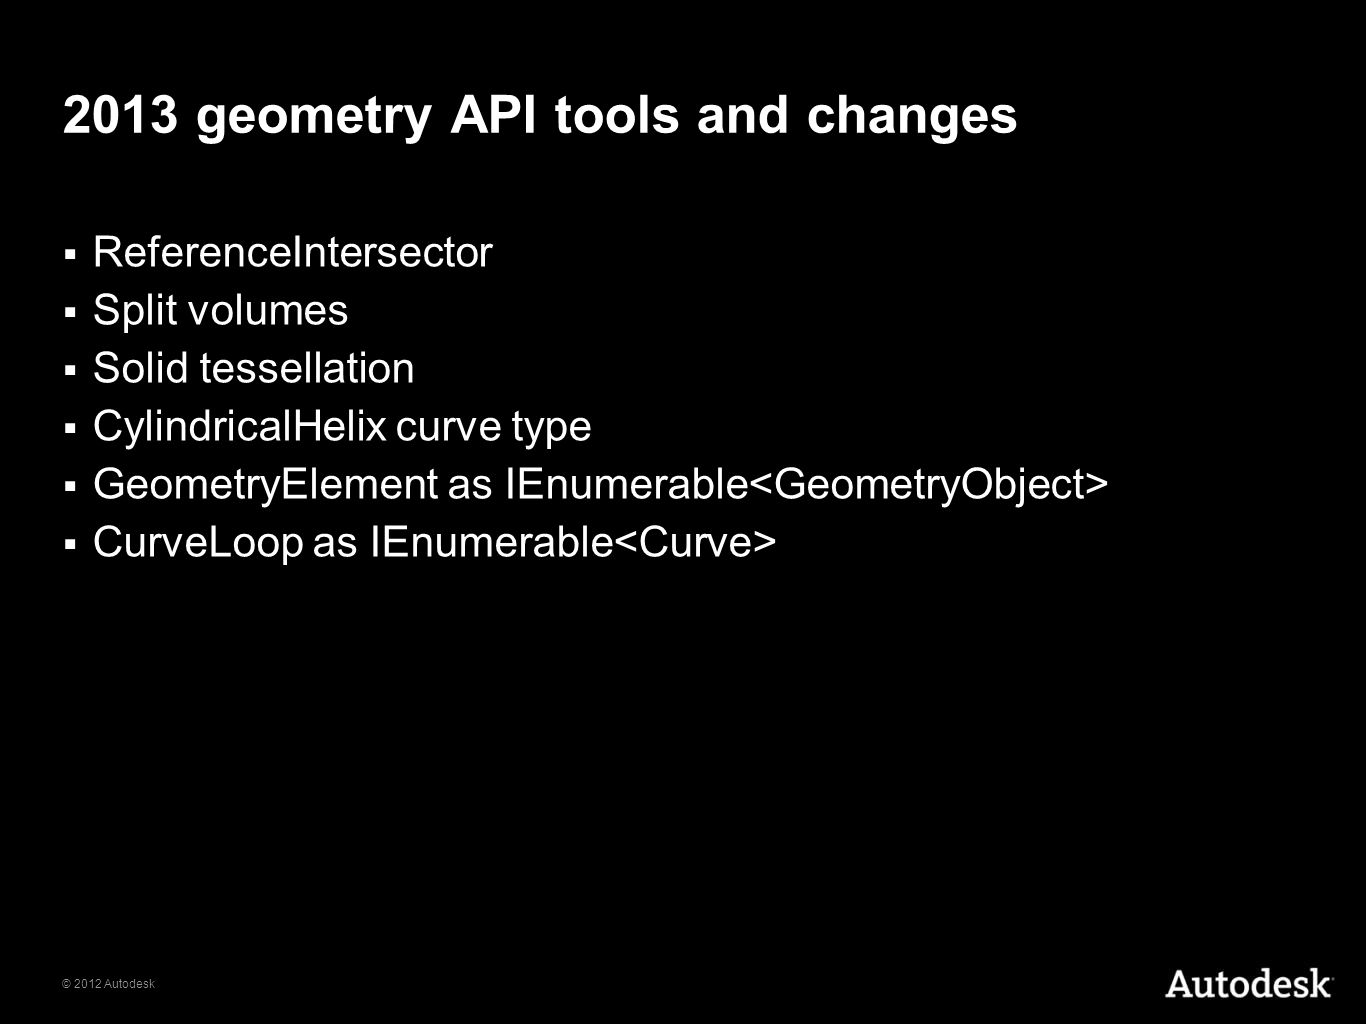 © 2012 Autodesk 2013 geometry API tools and changes ReferenceIntersector Split volumes Solid tessellation CylindricalHelix curve type GeometryElement